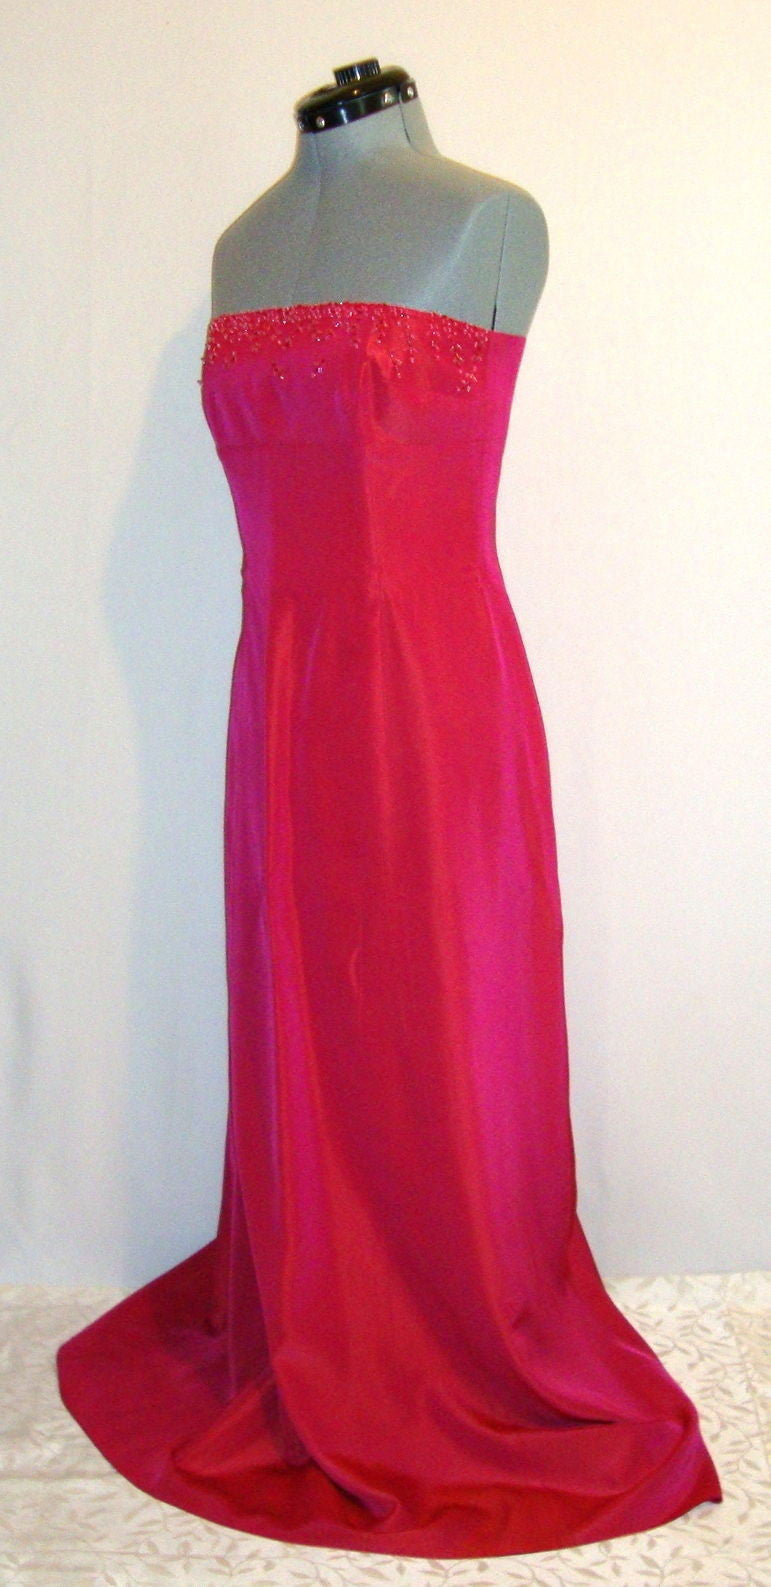 LAUNDRY BEADED PINK FUSCHIA IRRIDESCENT SATIN BUSTIER GOWN DRESS MEDIUM 8